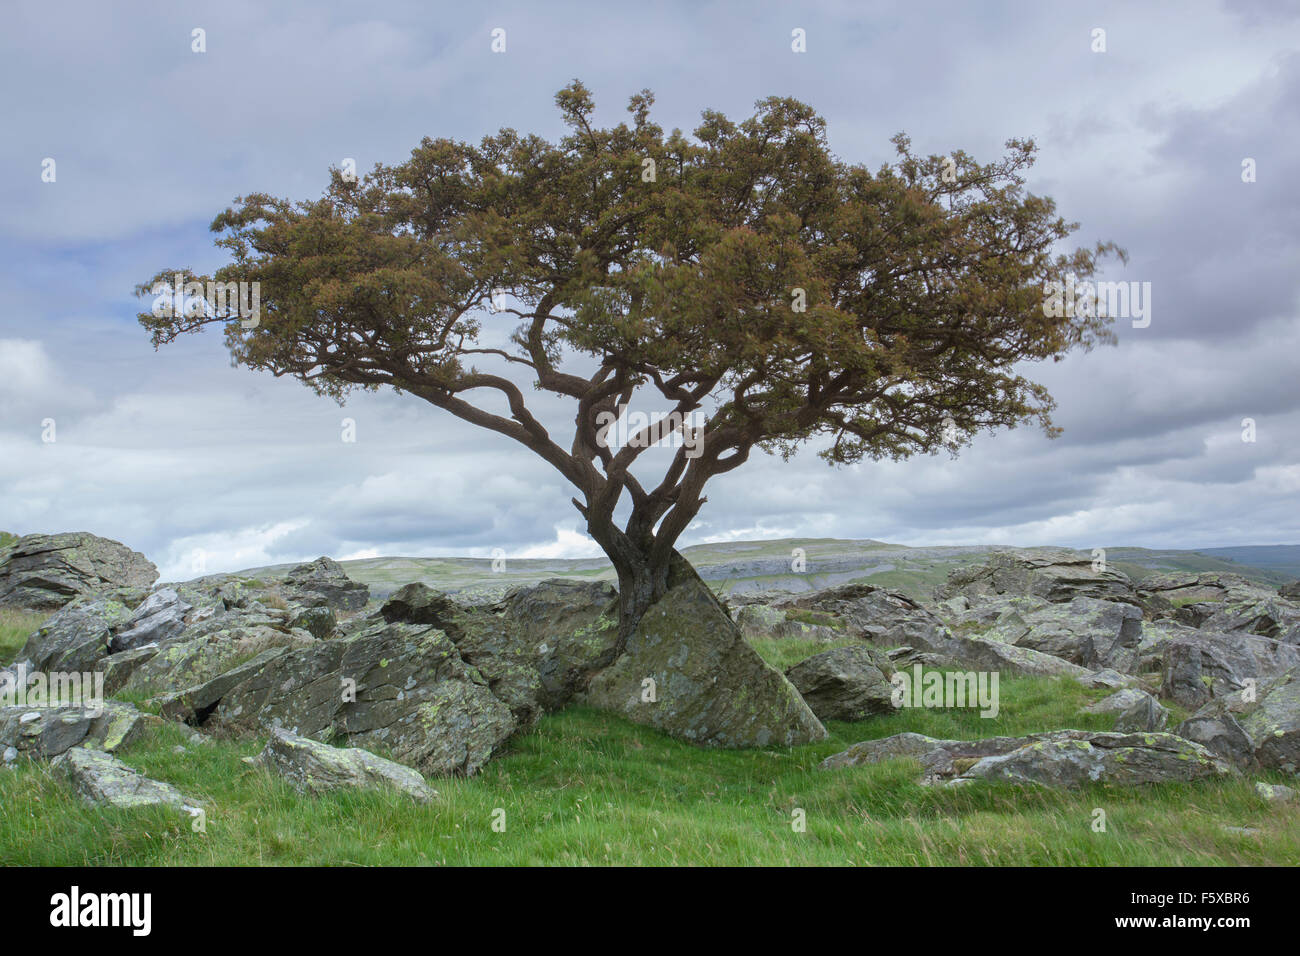 Stunted Hawthorn Tree growing through Limestone at Norber Brow, Austwick, Craven District, Yorkshire Dales, North - Stock Image